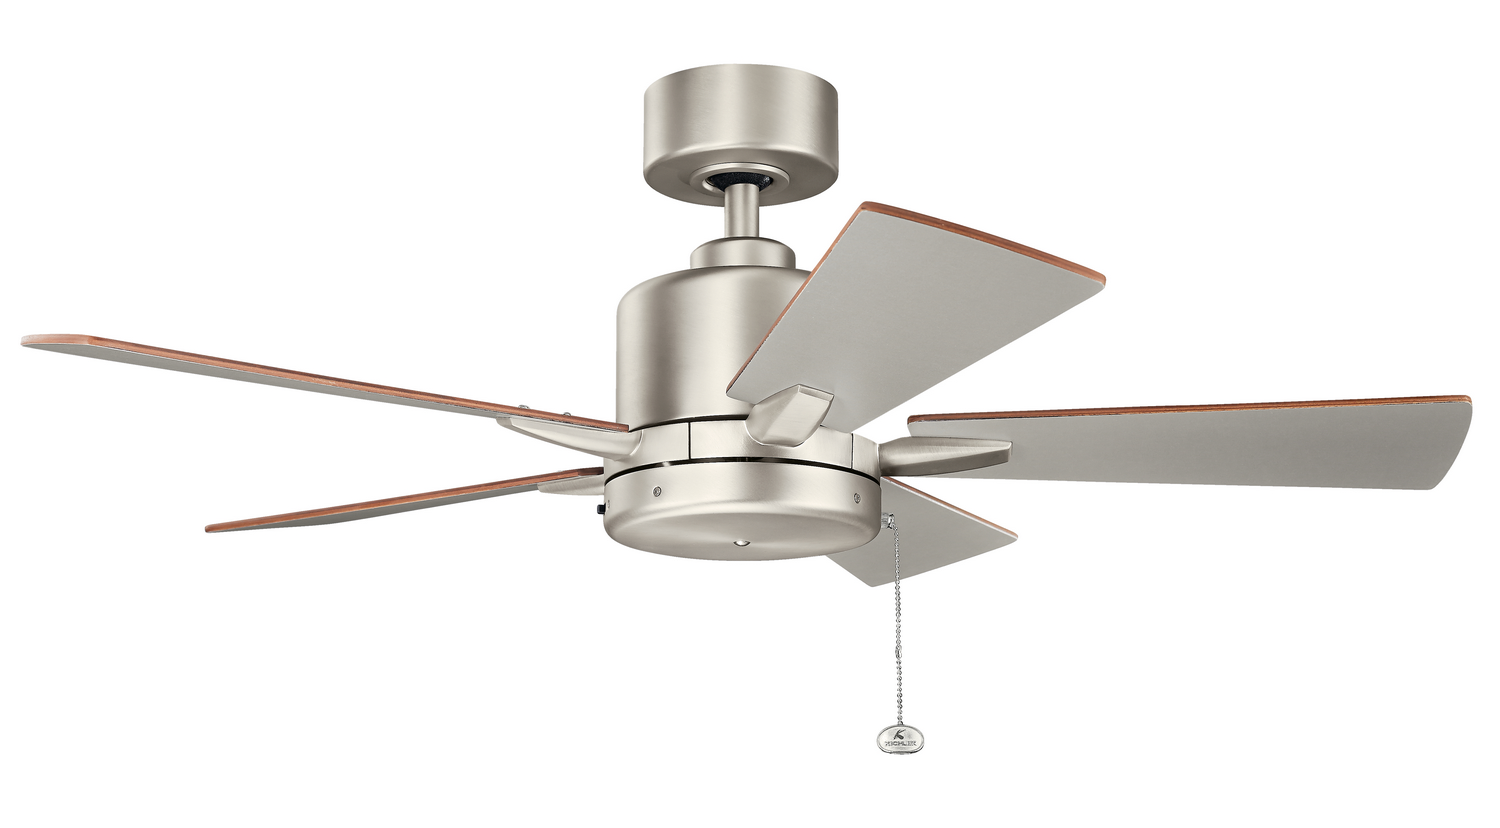 42 inchCeiling Fan from the Bowen collection by Kichler 330241NI